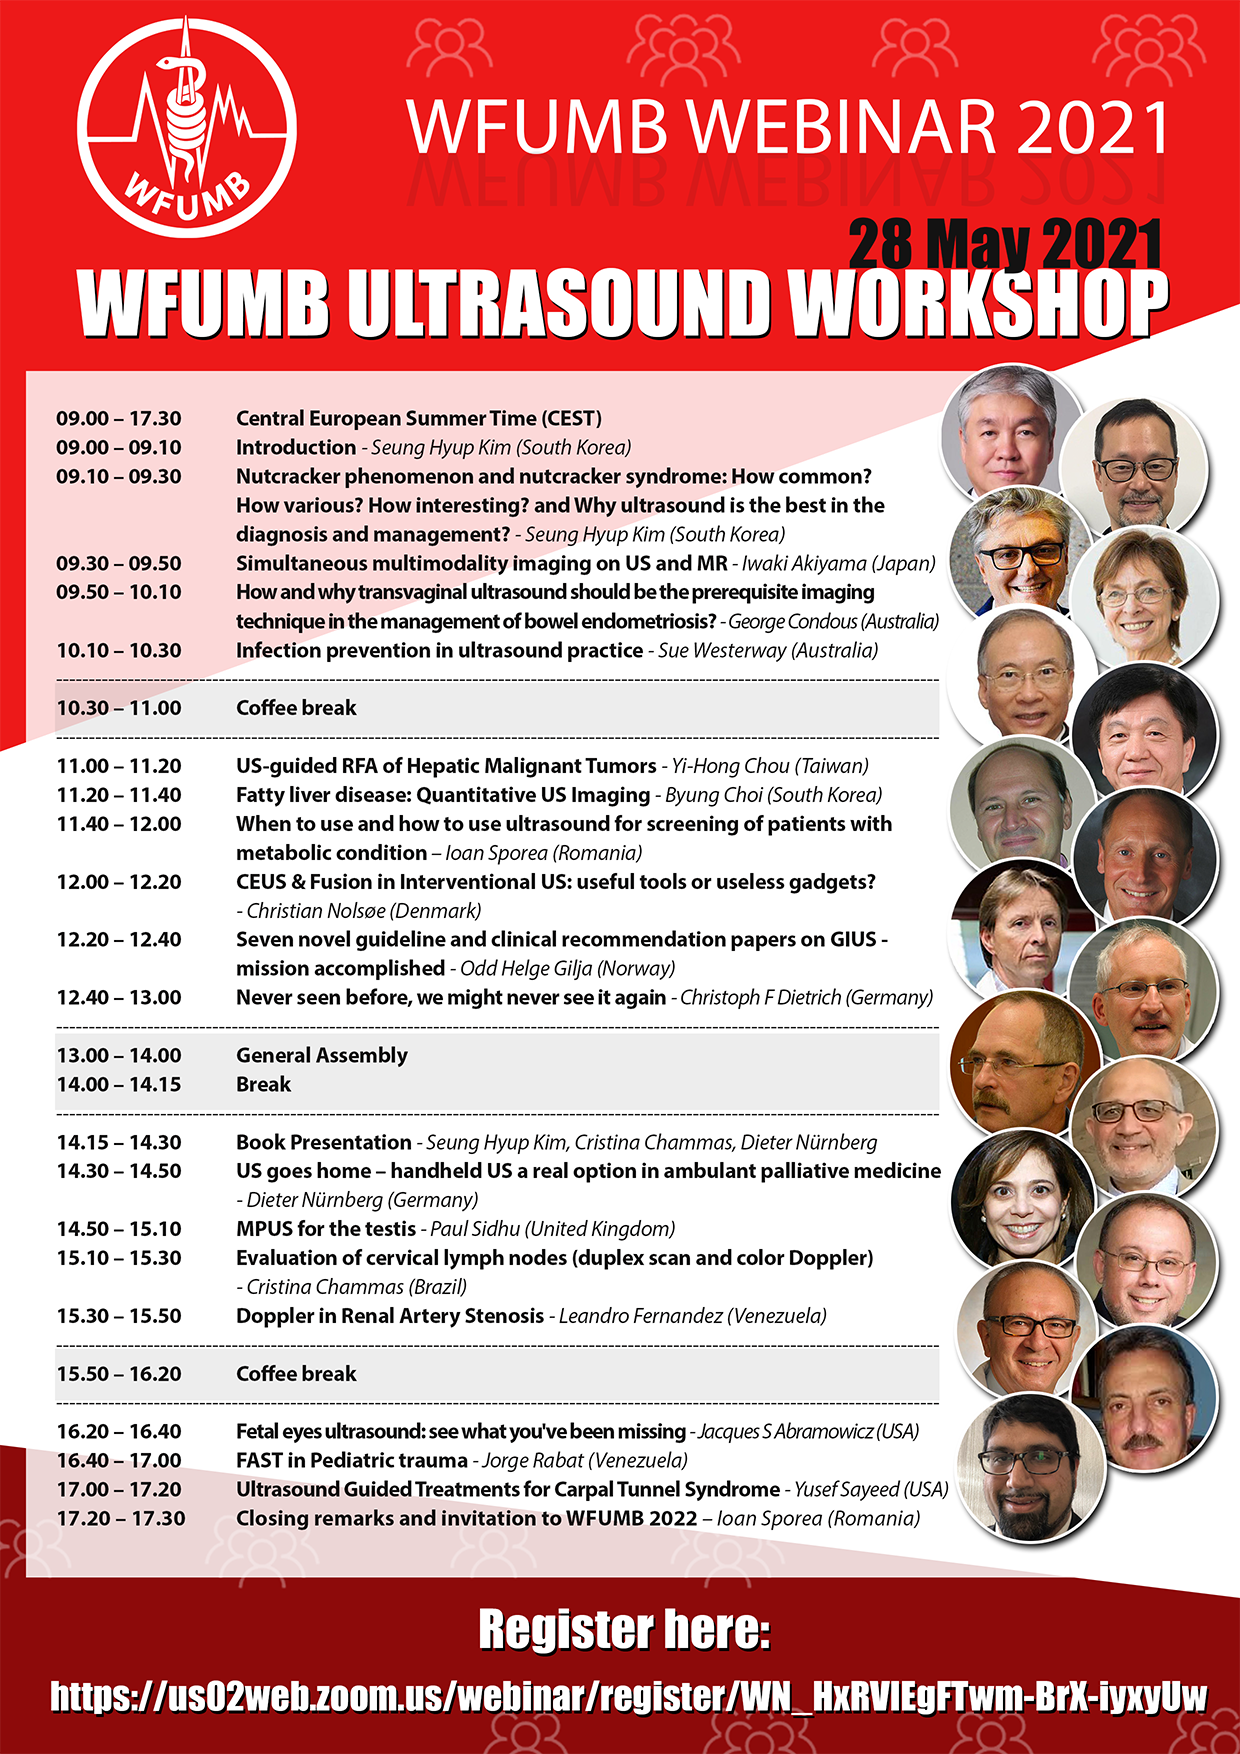 WFUMB Ultrasound Workshop 28 May 2021 09.00 - 17.30 CEST